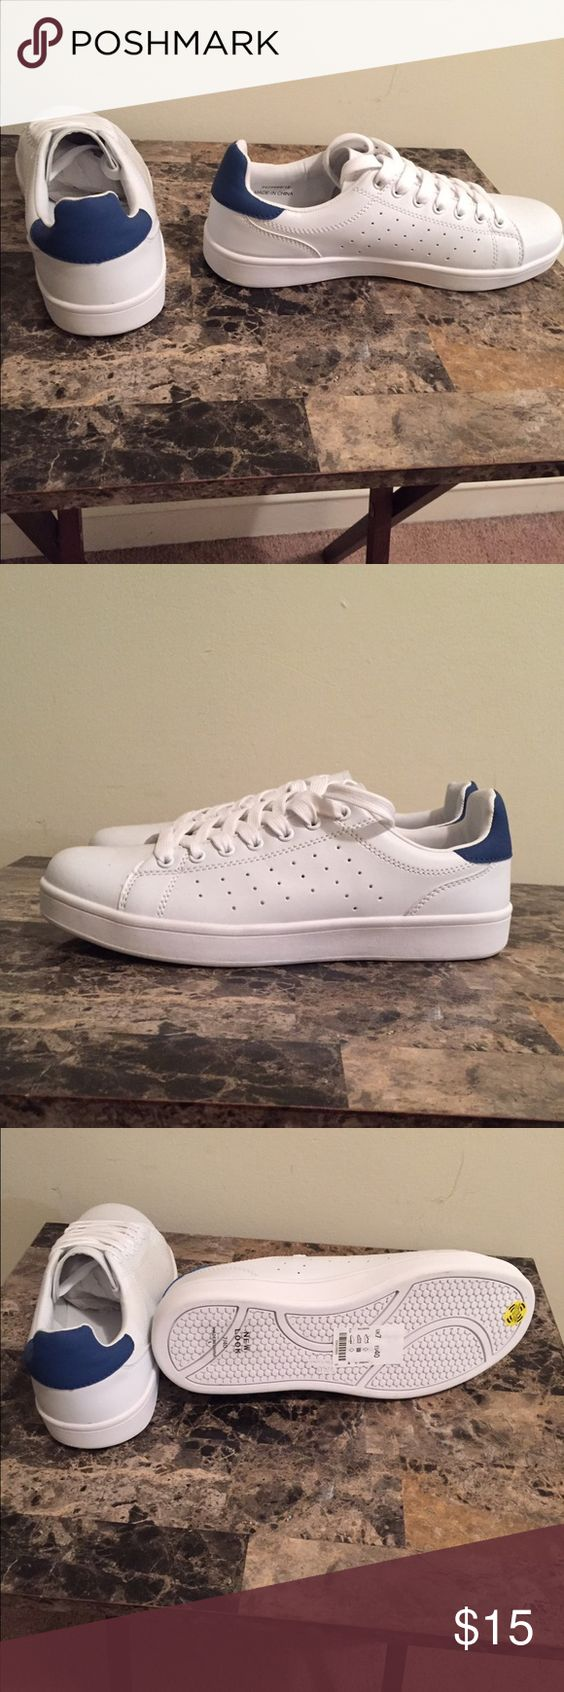 Cute tennis sneakers. New White with back blue accent tennis sneakers. New Look Shoes Sneakers